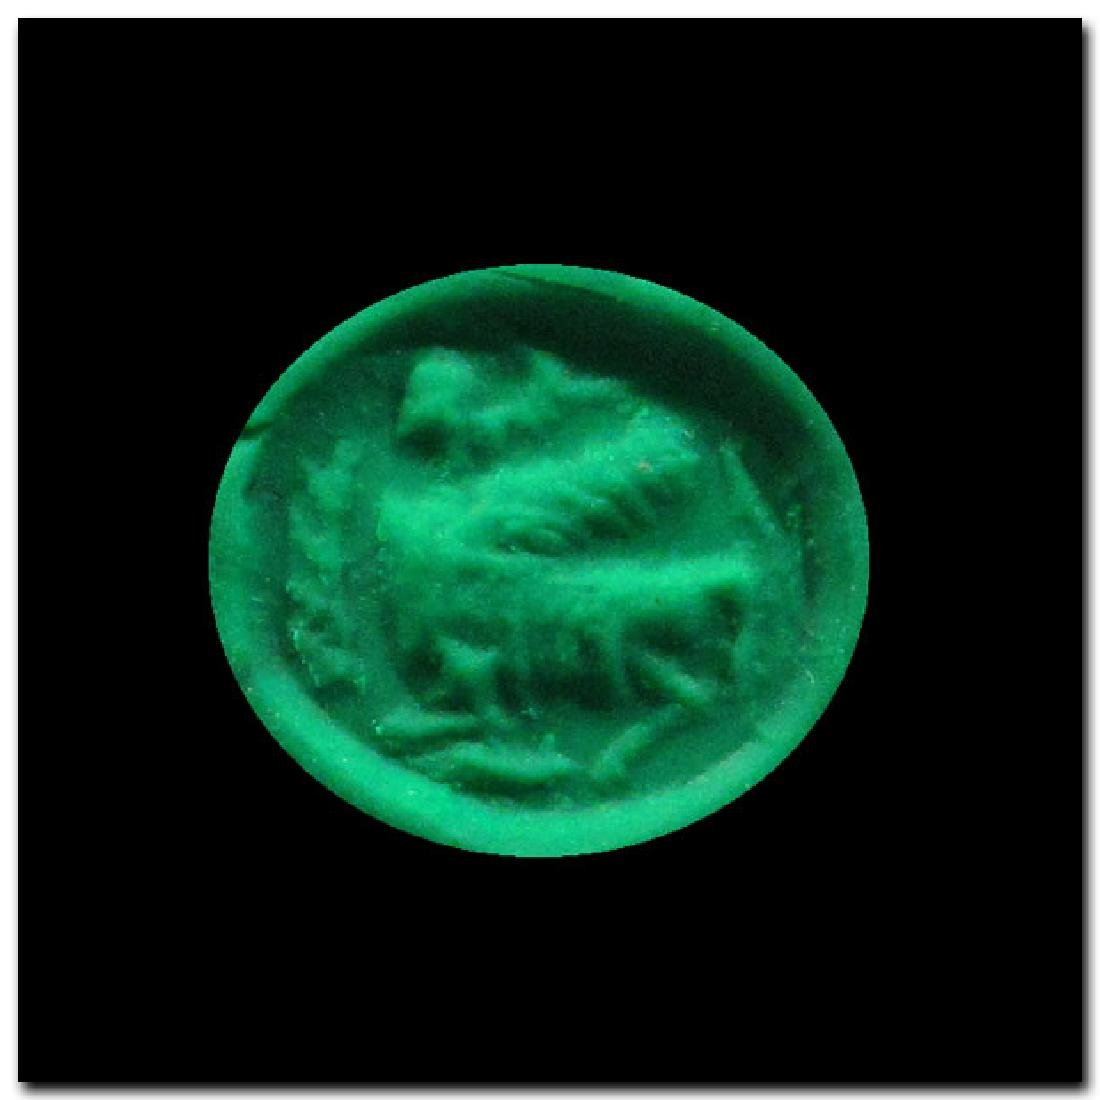 Phoenician Steatite Seal with Sphinx, c. 6th-5th - 2